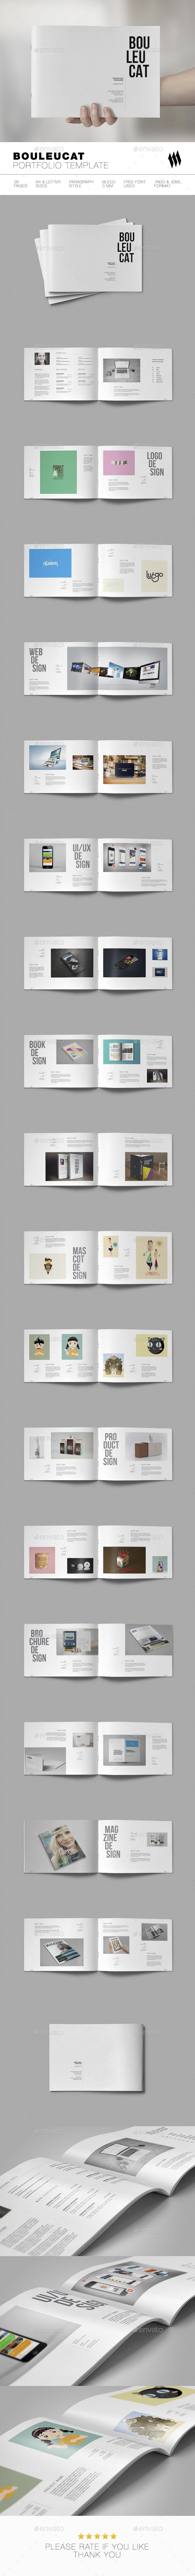 Bouleucat Portfolio Brochure Template 	InDesign INDD. Download here: http://graphicriver.net/item/bouleucat-portfolio-template/16423051?ref=ksioks